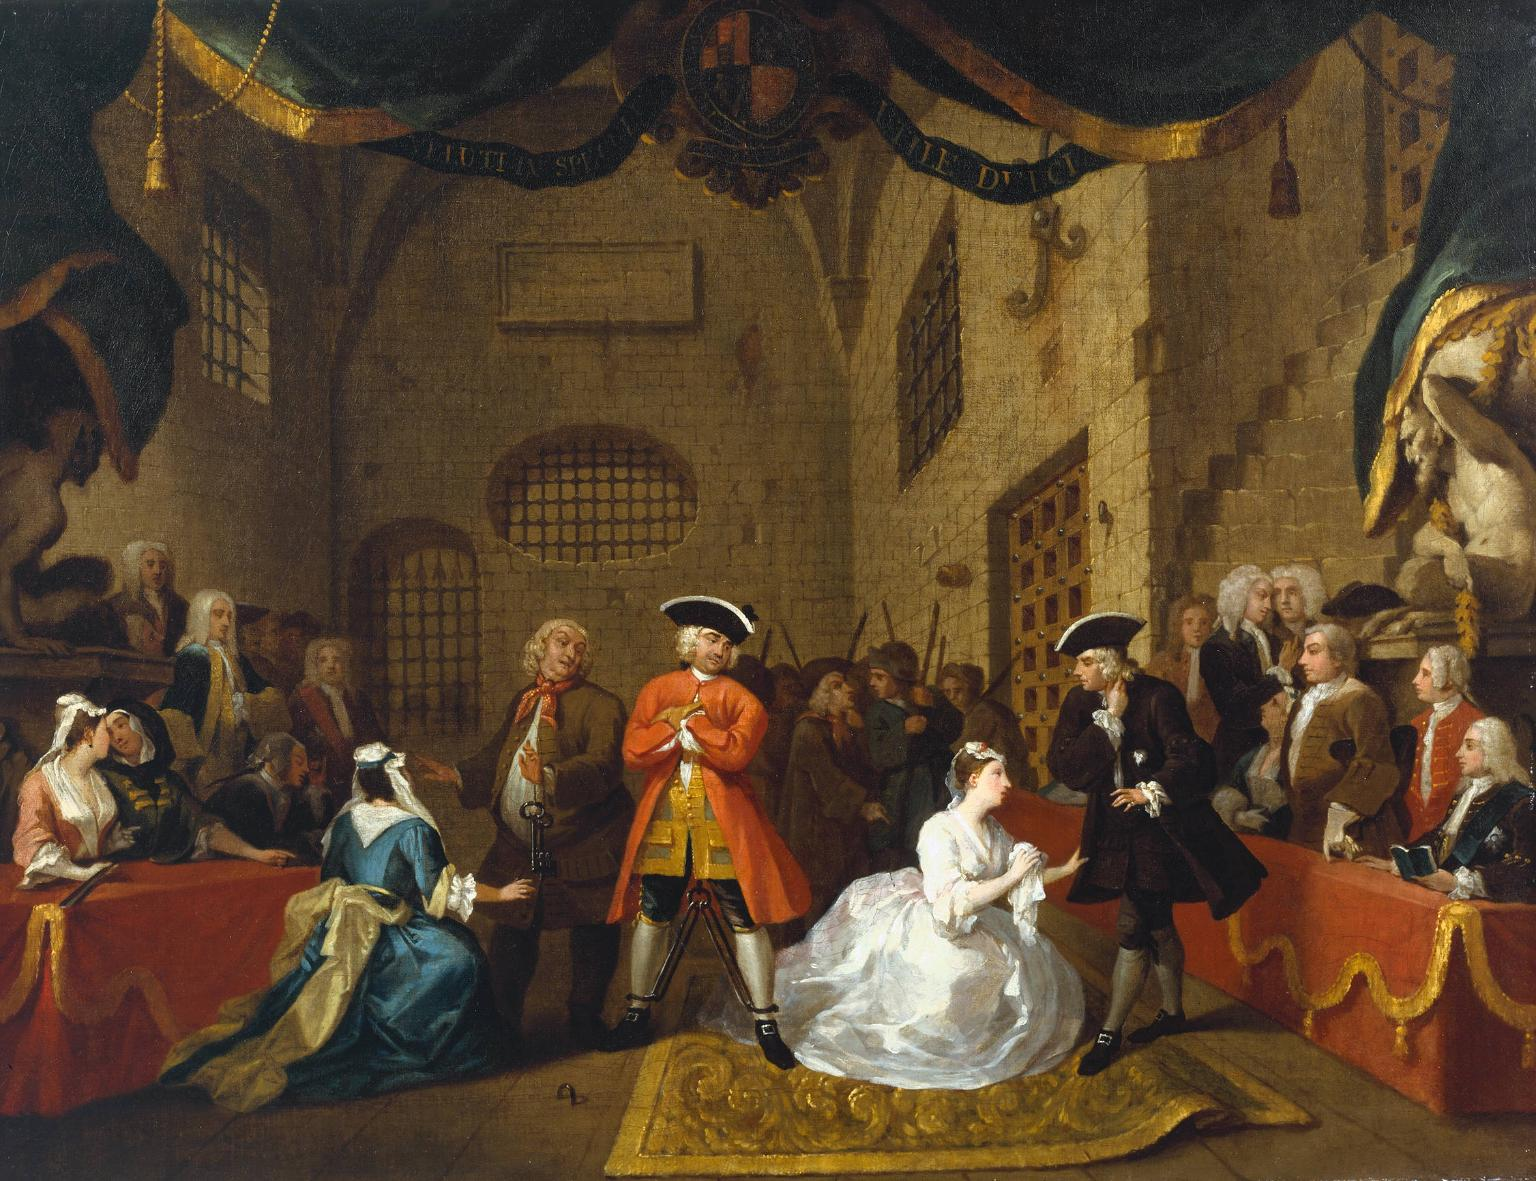 William Hogarth, Beggar's Opera 1728 - Quelle: Wikimedia